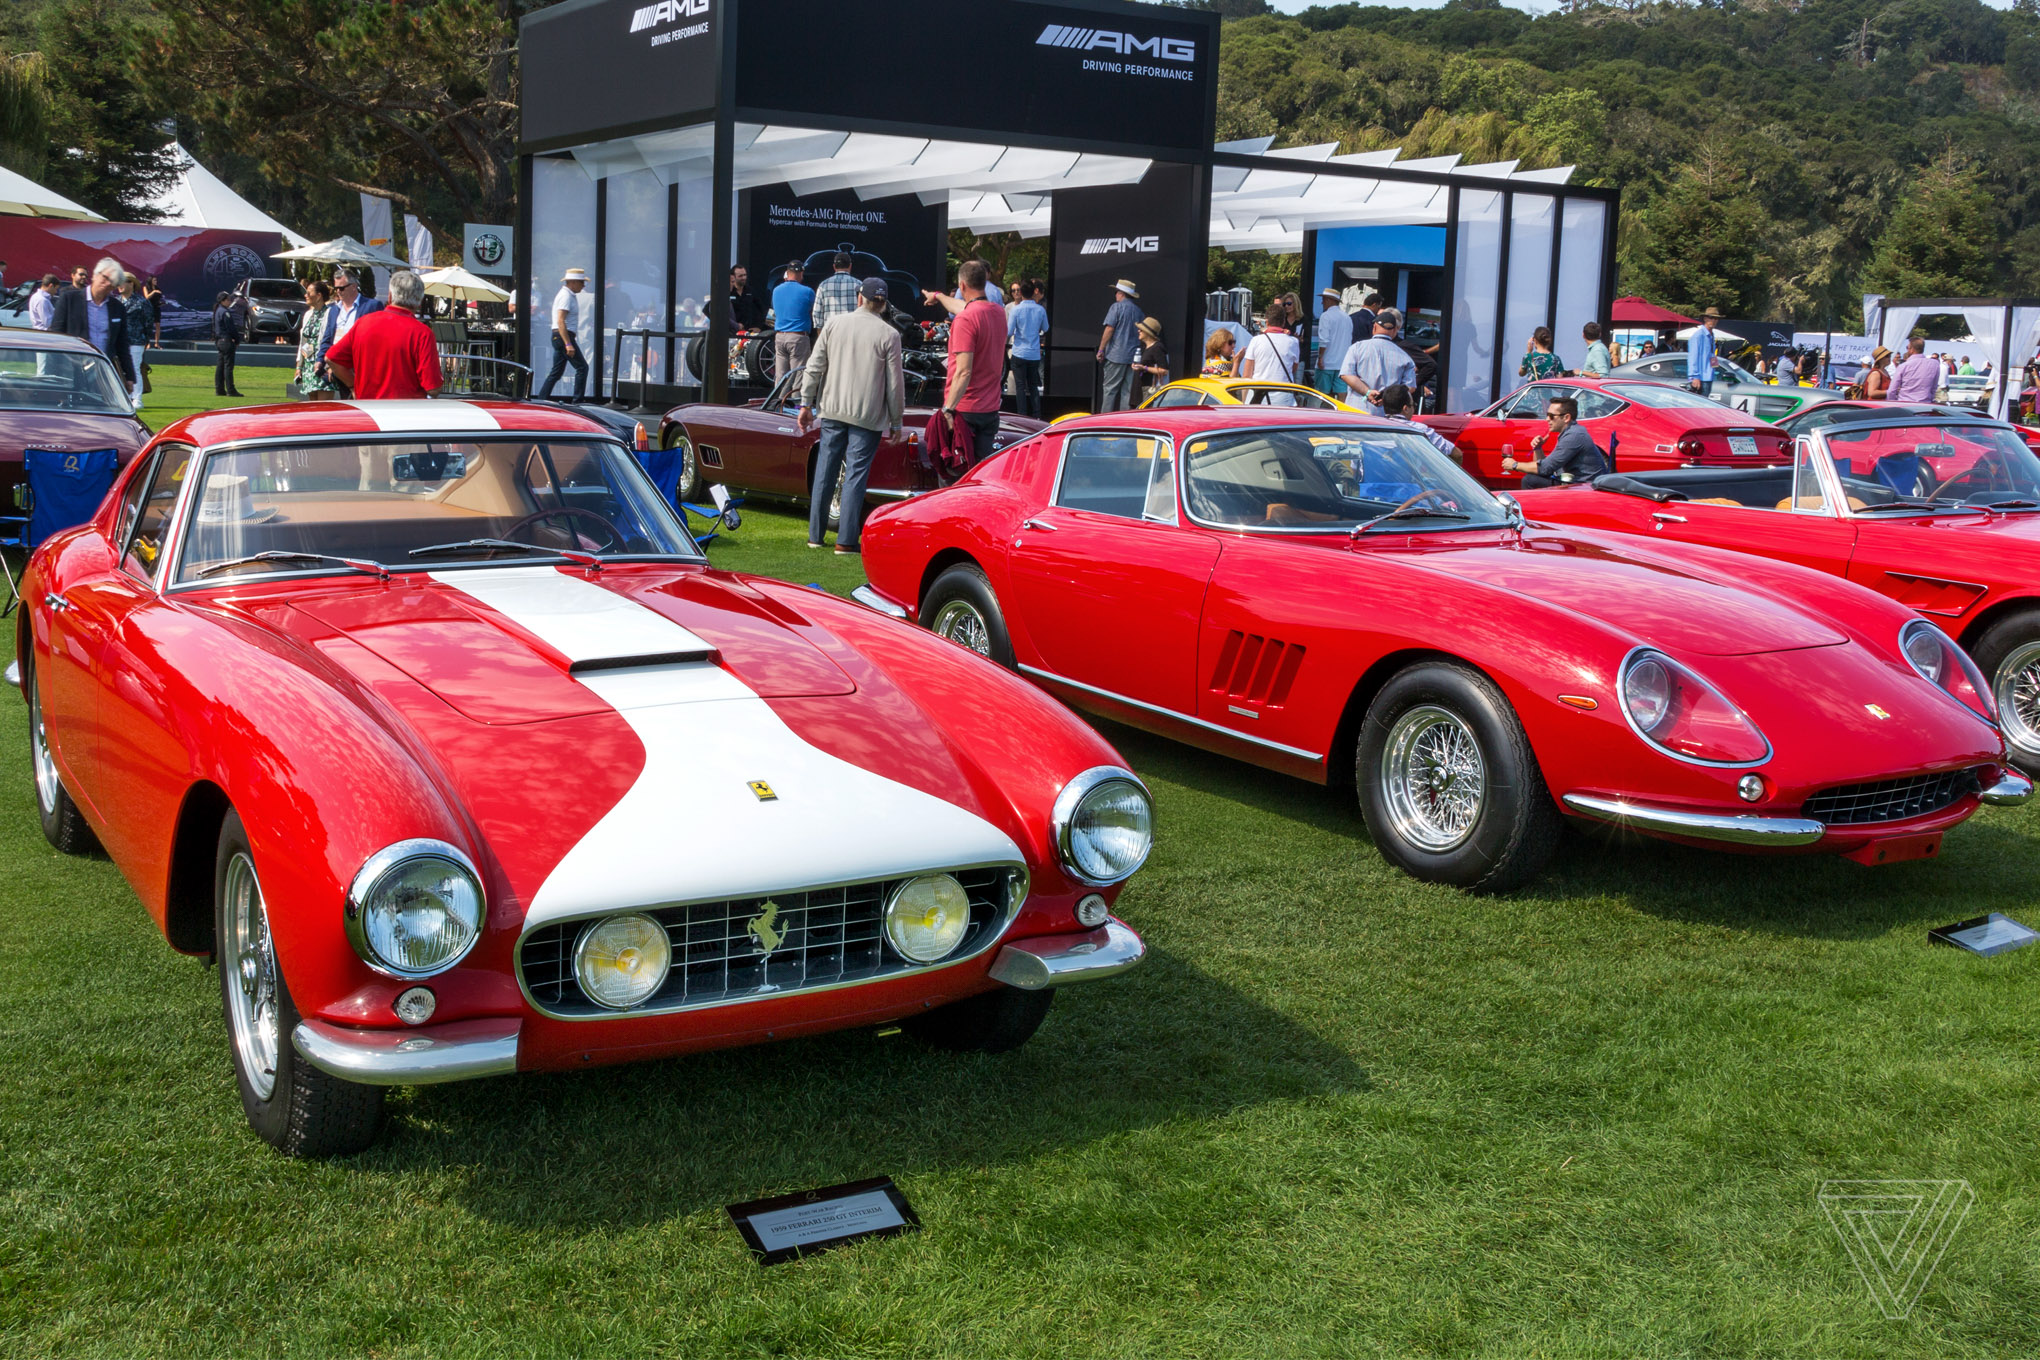 America S Most Important Luxury Car Show The Verge